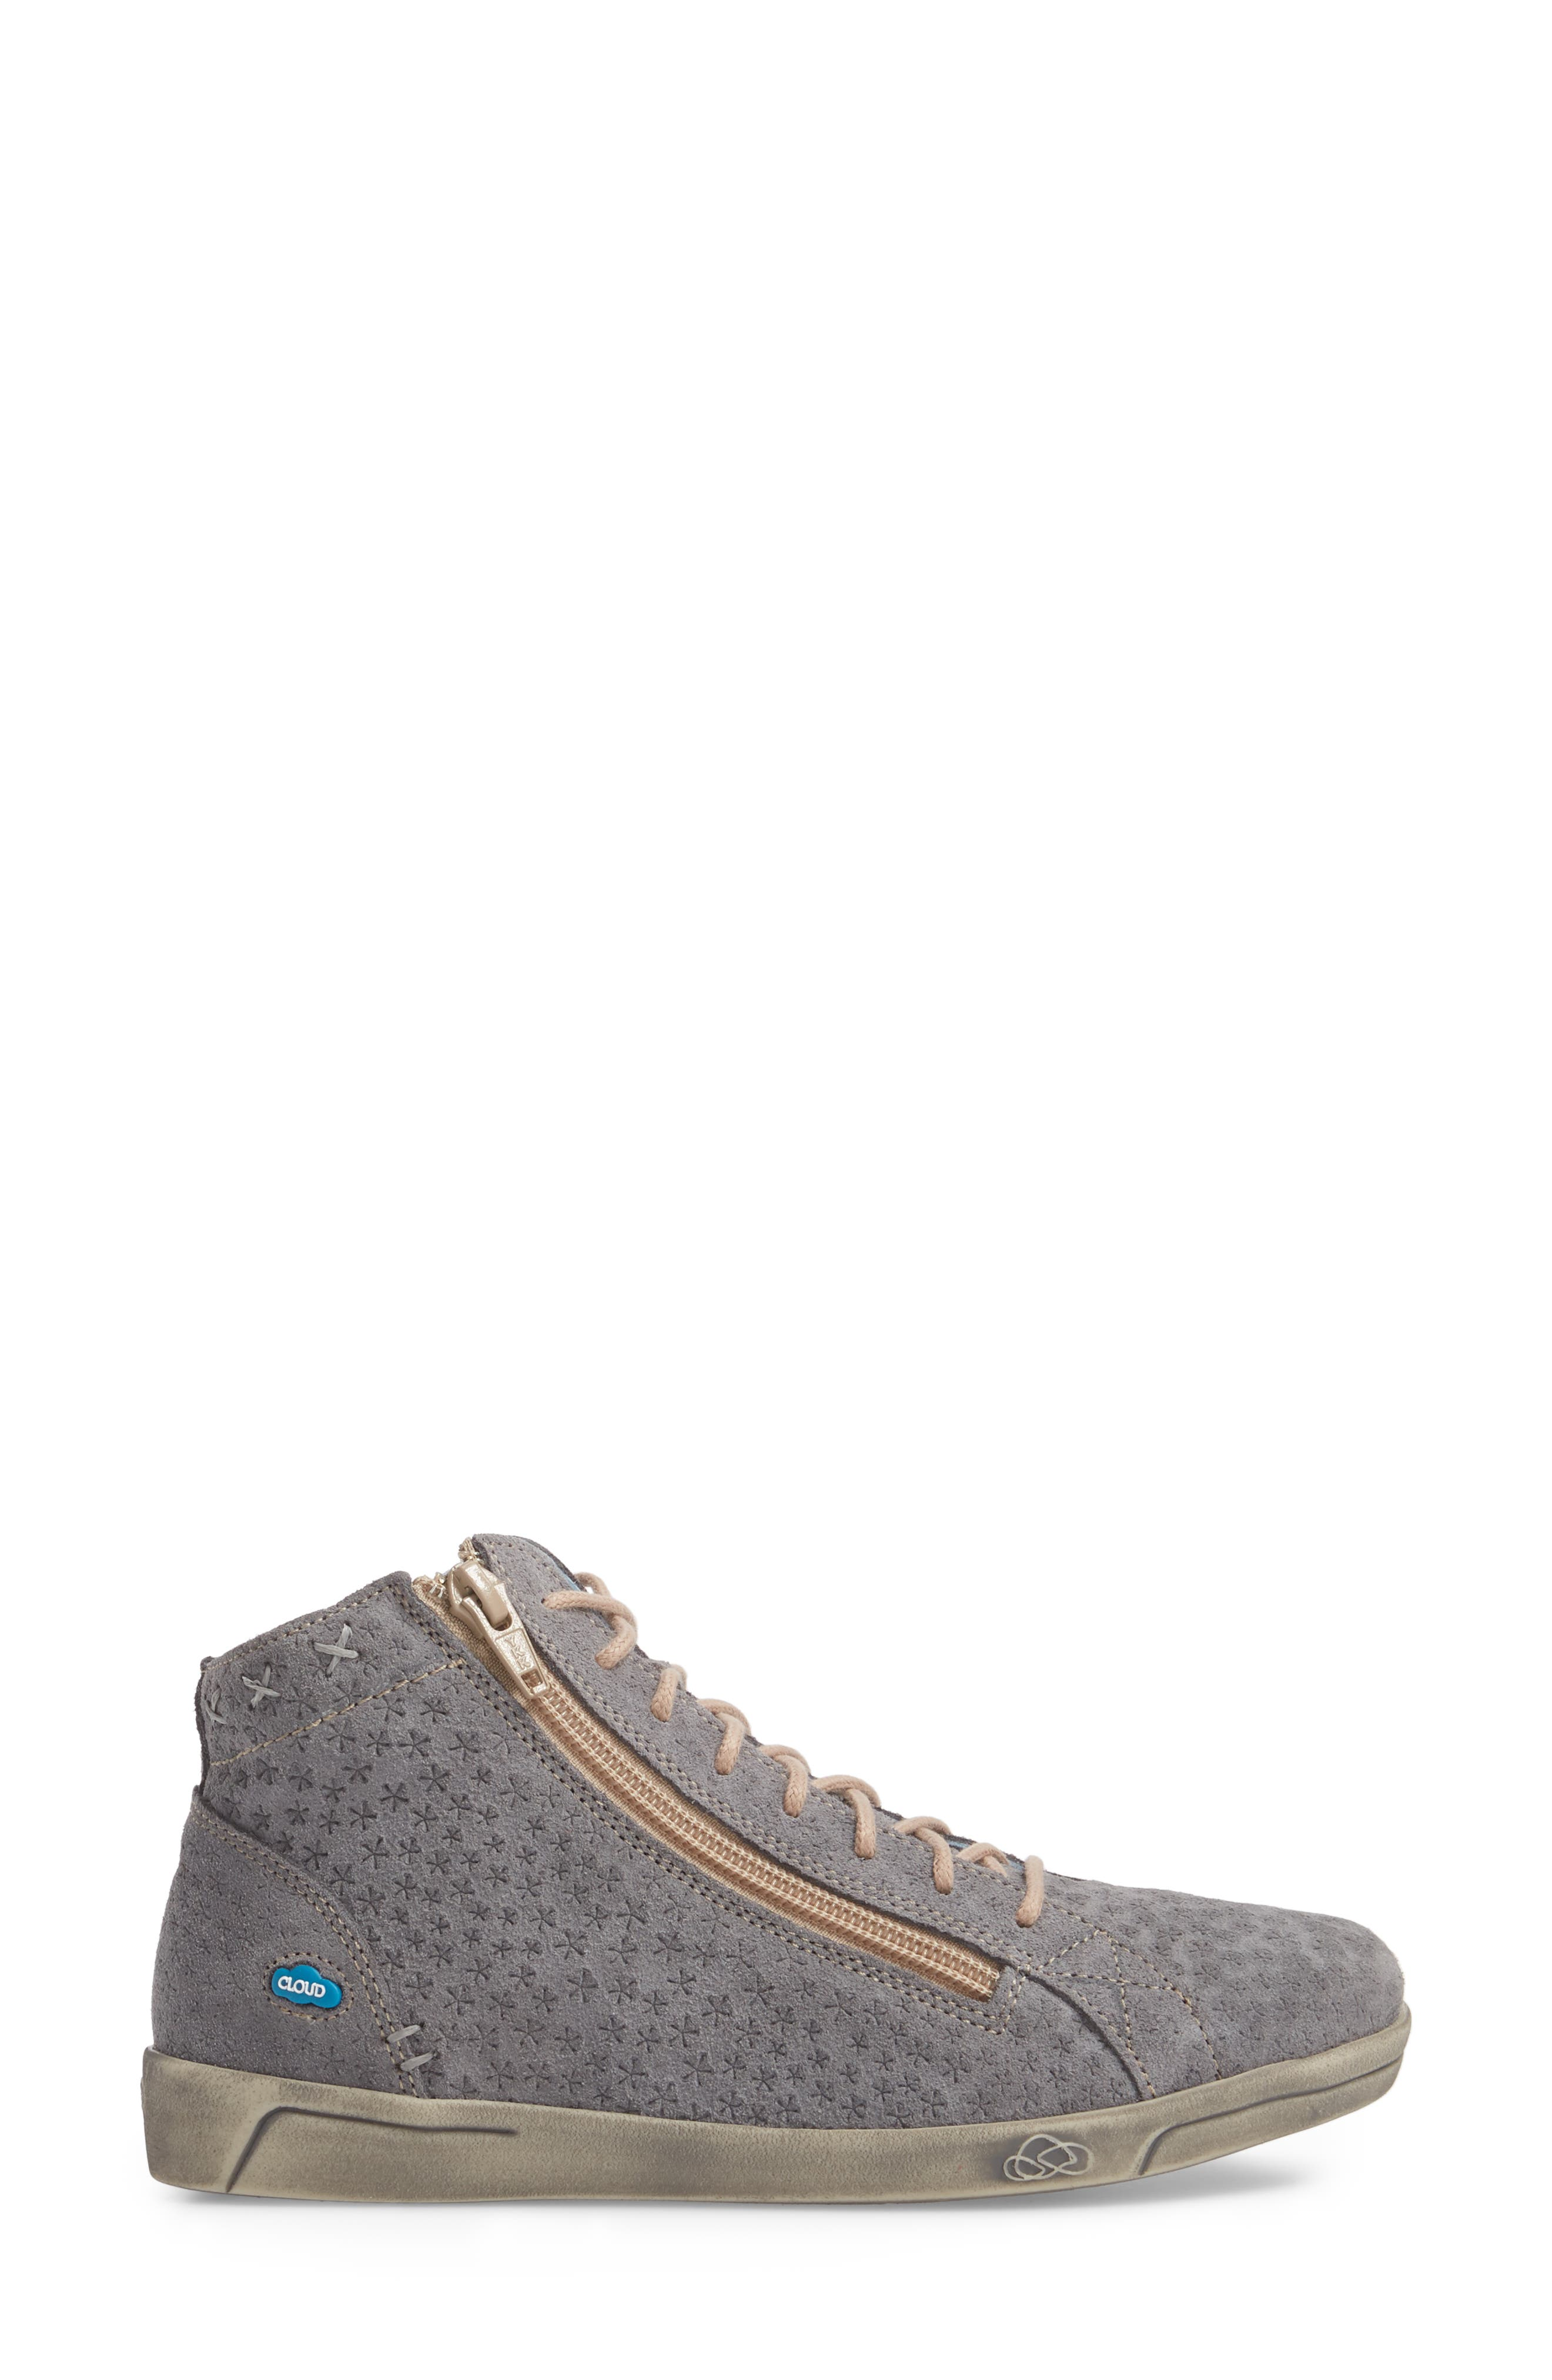 Aika Star Perforated High Top Sneaker,                             Alternate thumbnail 3, color,                             Grey Leather